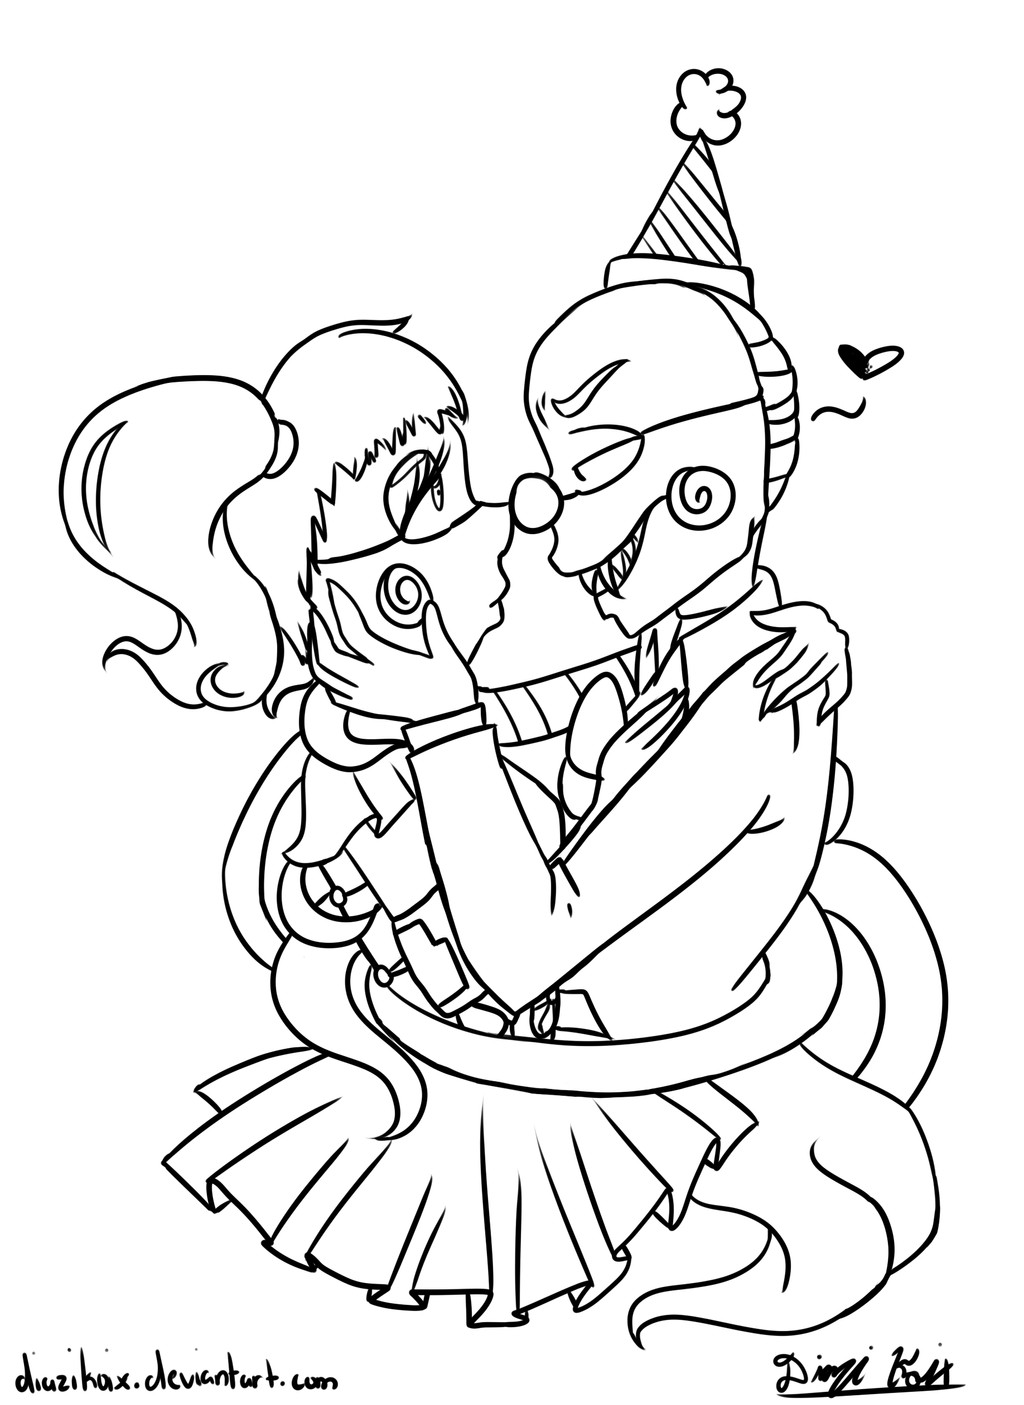 Ennard X Baby Coloring Page by DiaziKoix on DeviantArt